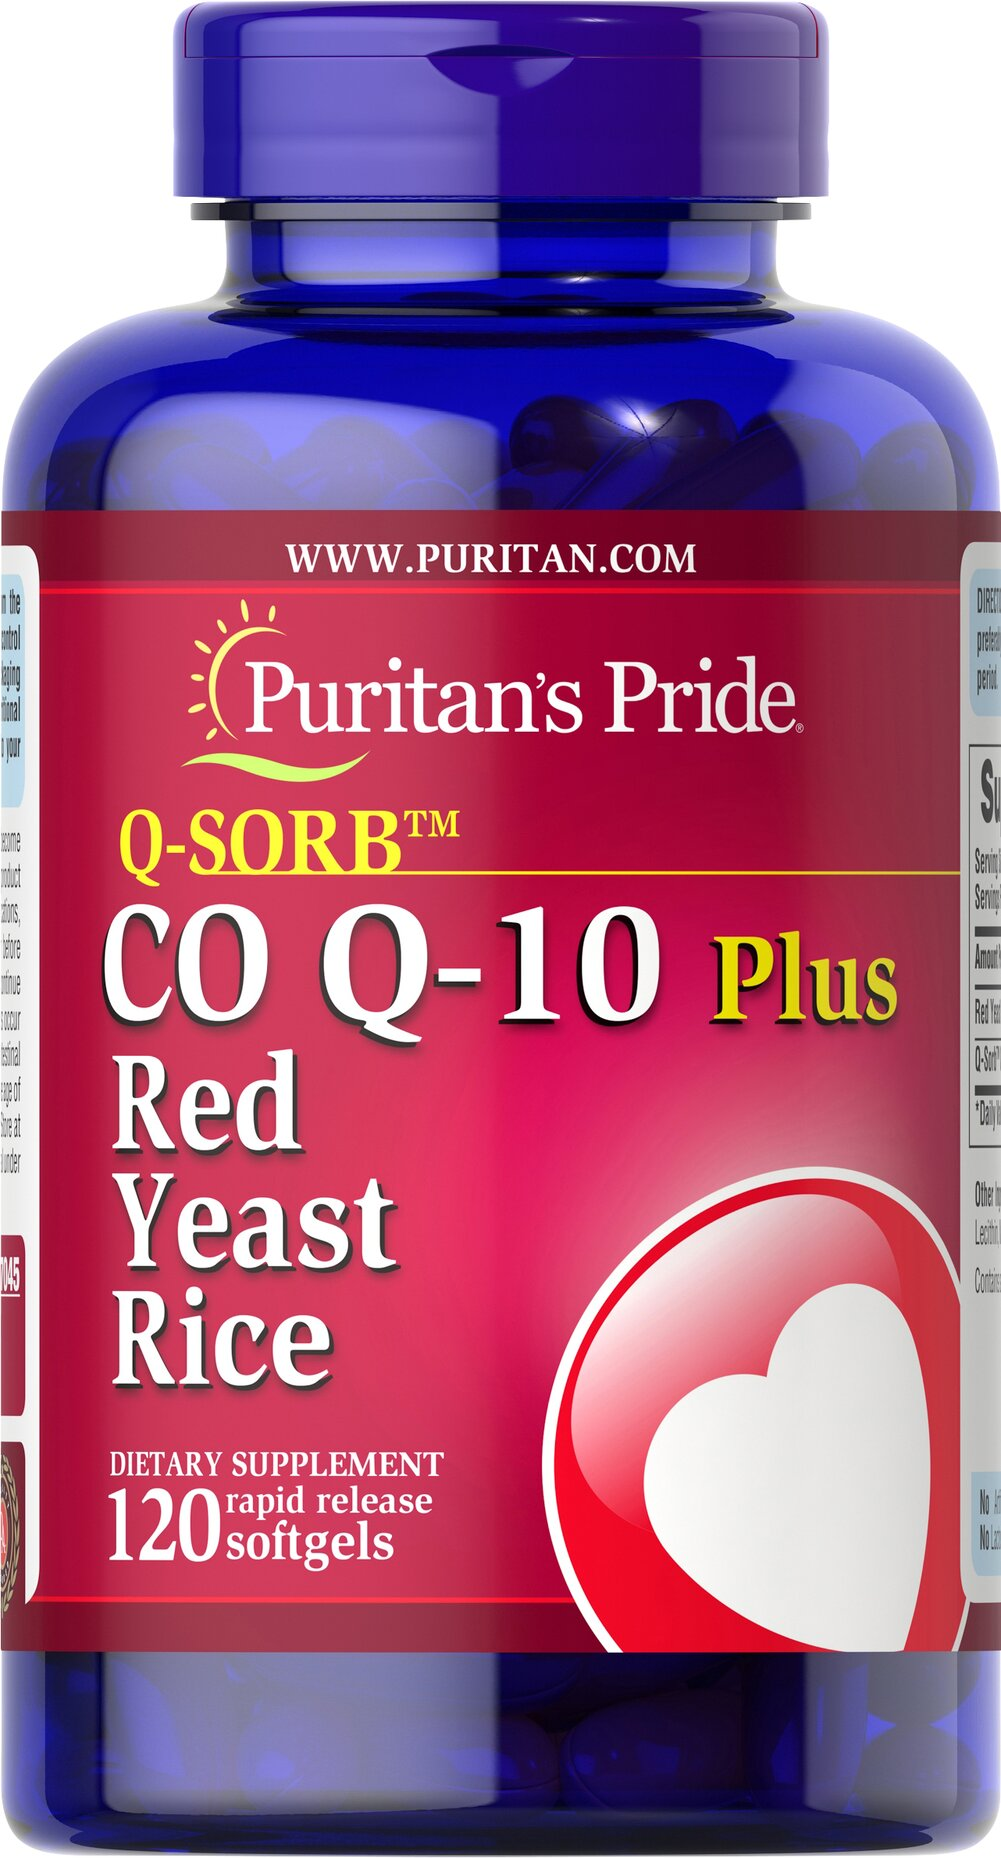 Q-SORB™ Co Q-10 Plus Red Yeast Rice